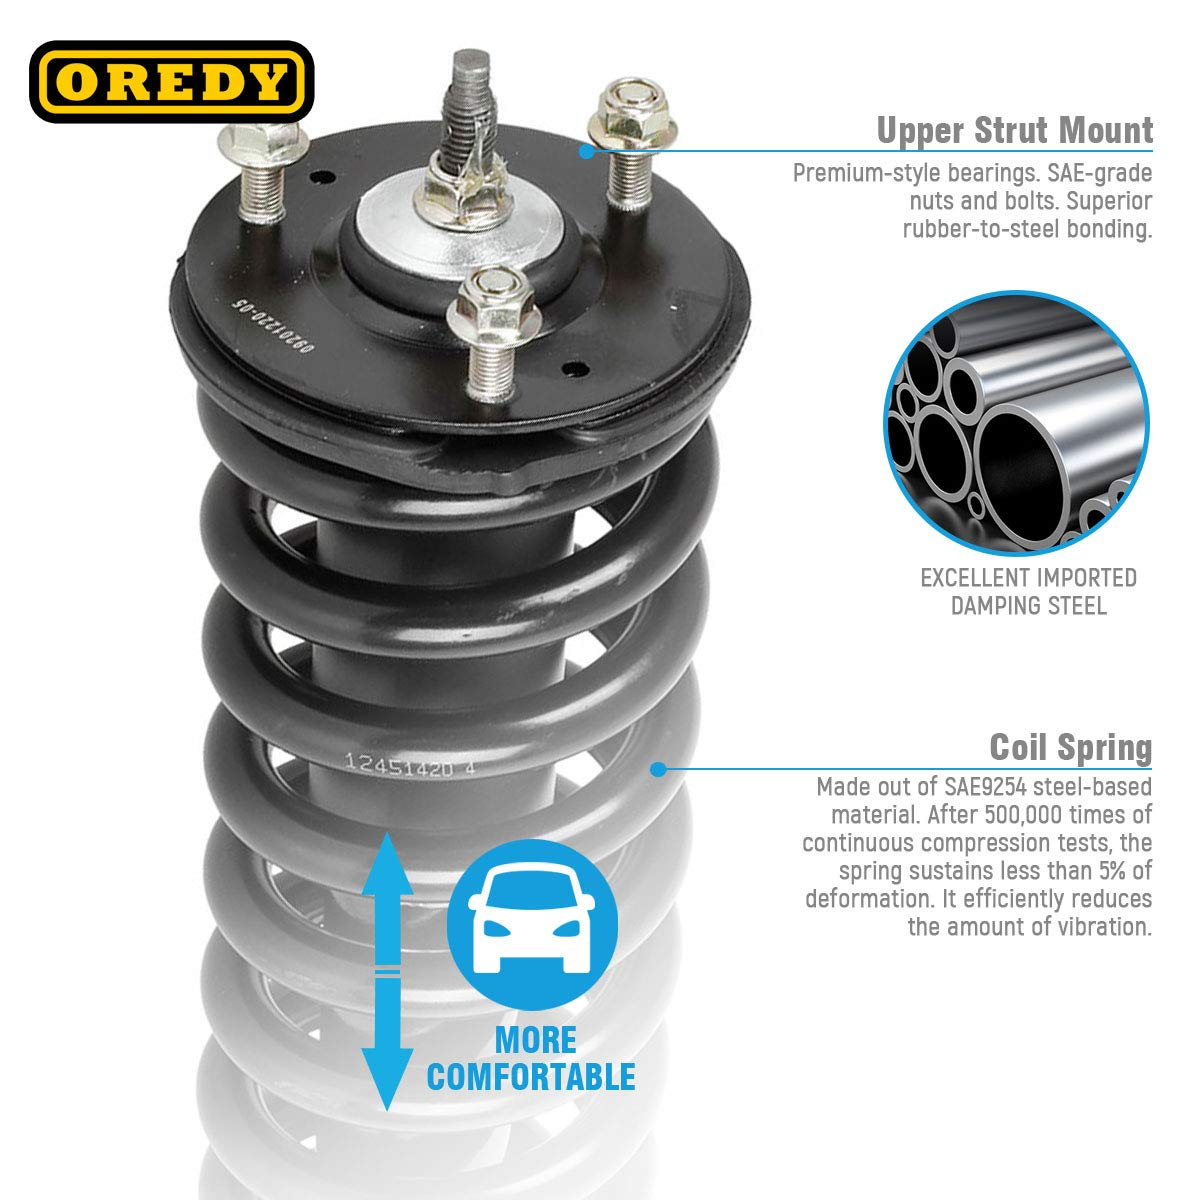 OREDY Front Pair Driver and Passenger Side Complete Struts Assembly Shock Coil Spring Assembly Kit 171347L 171347R 11931 11932 Compatible with Toyota Tundra 2000 2001 2002 2003 2004 2005 2006